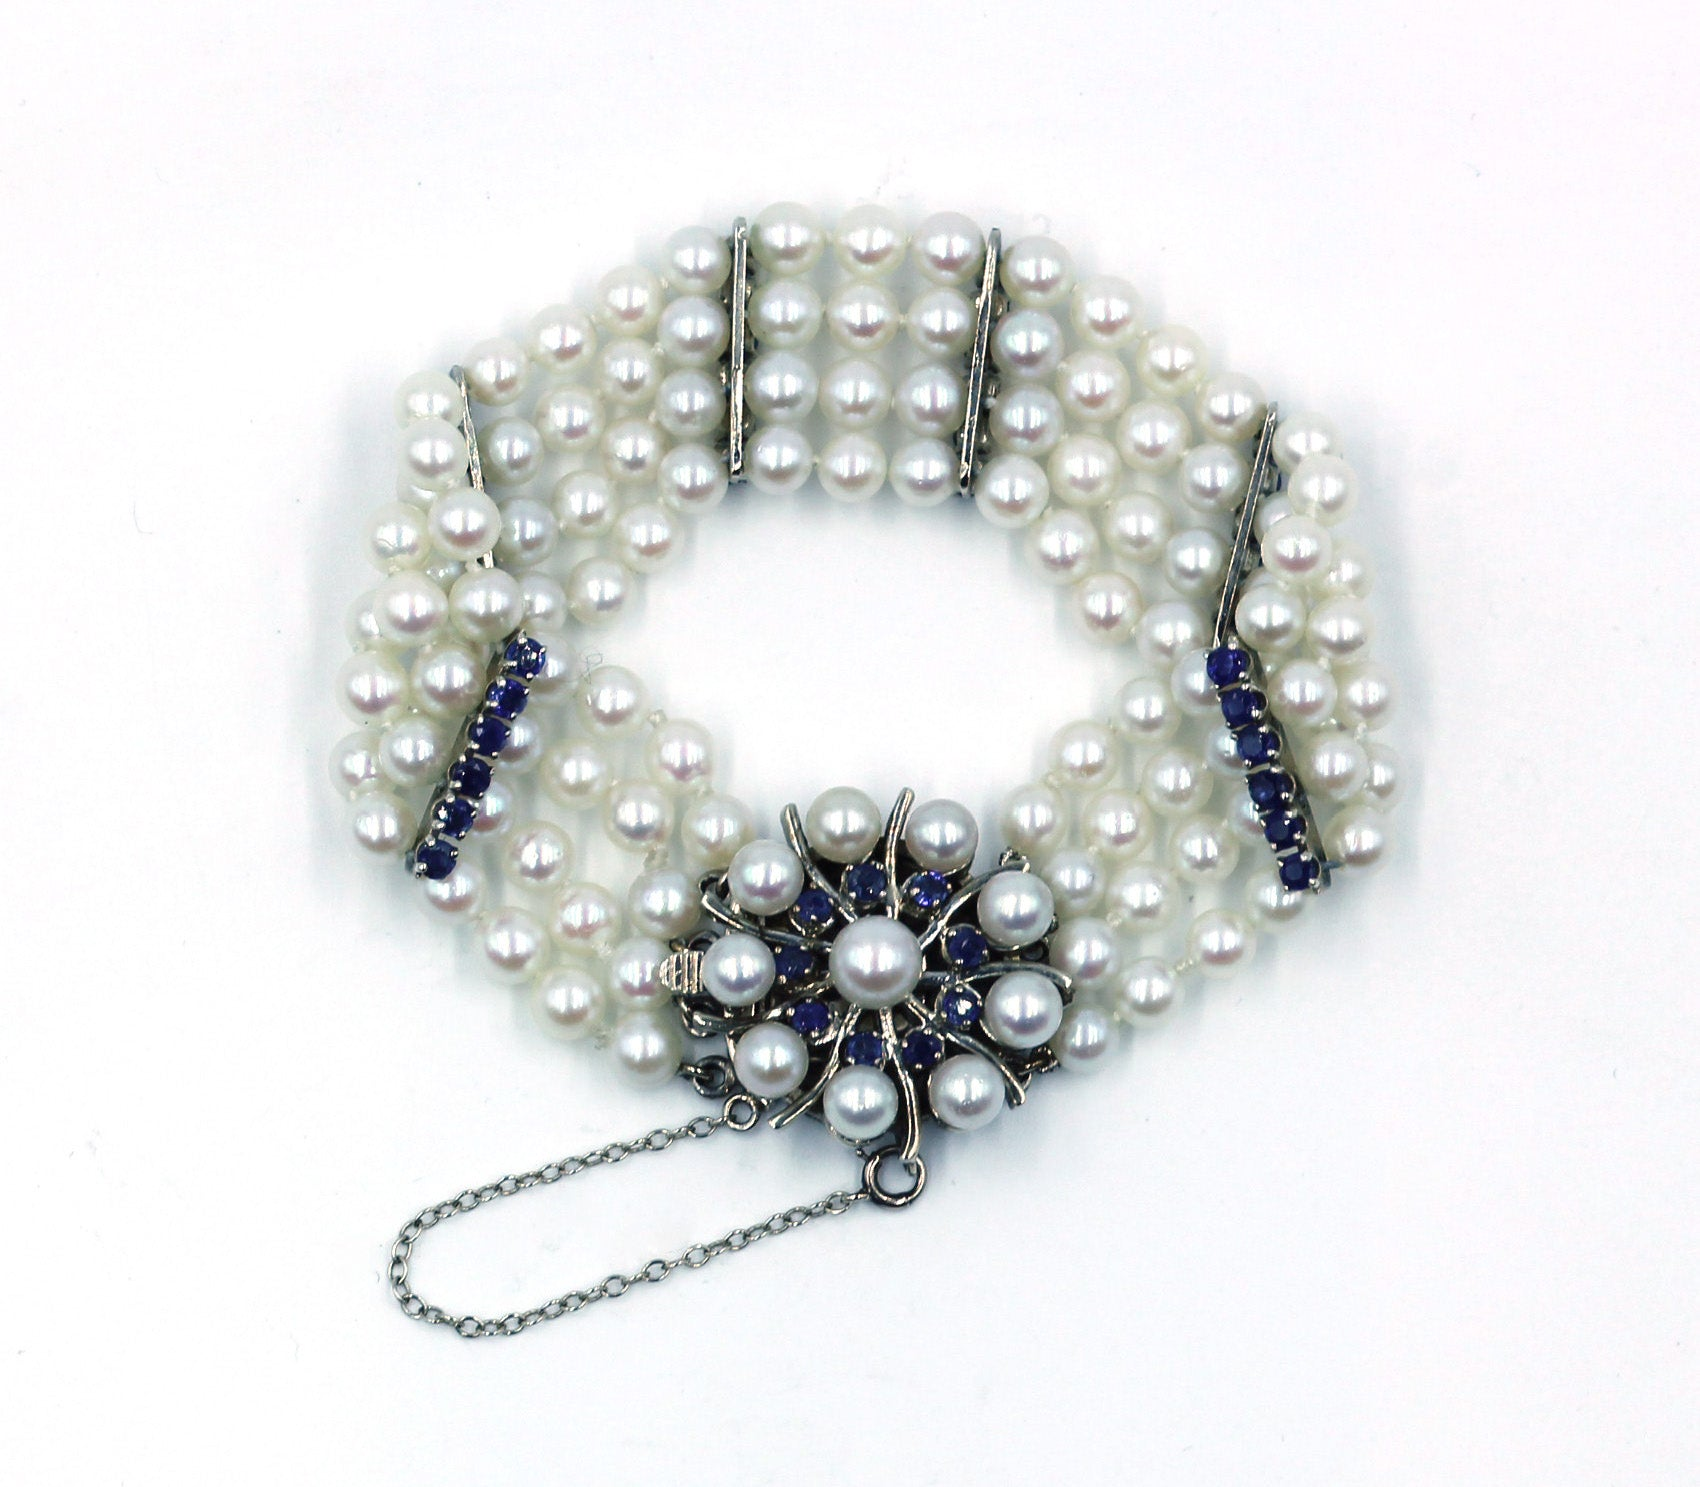 Vintage Pearl and Sapphire Bracelet